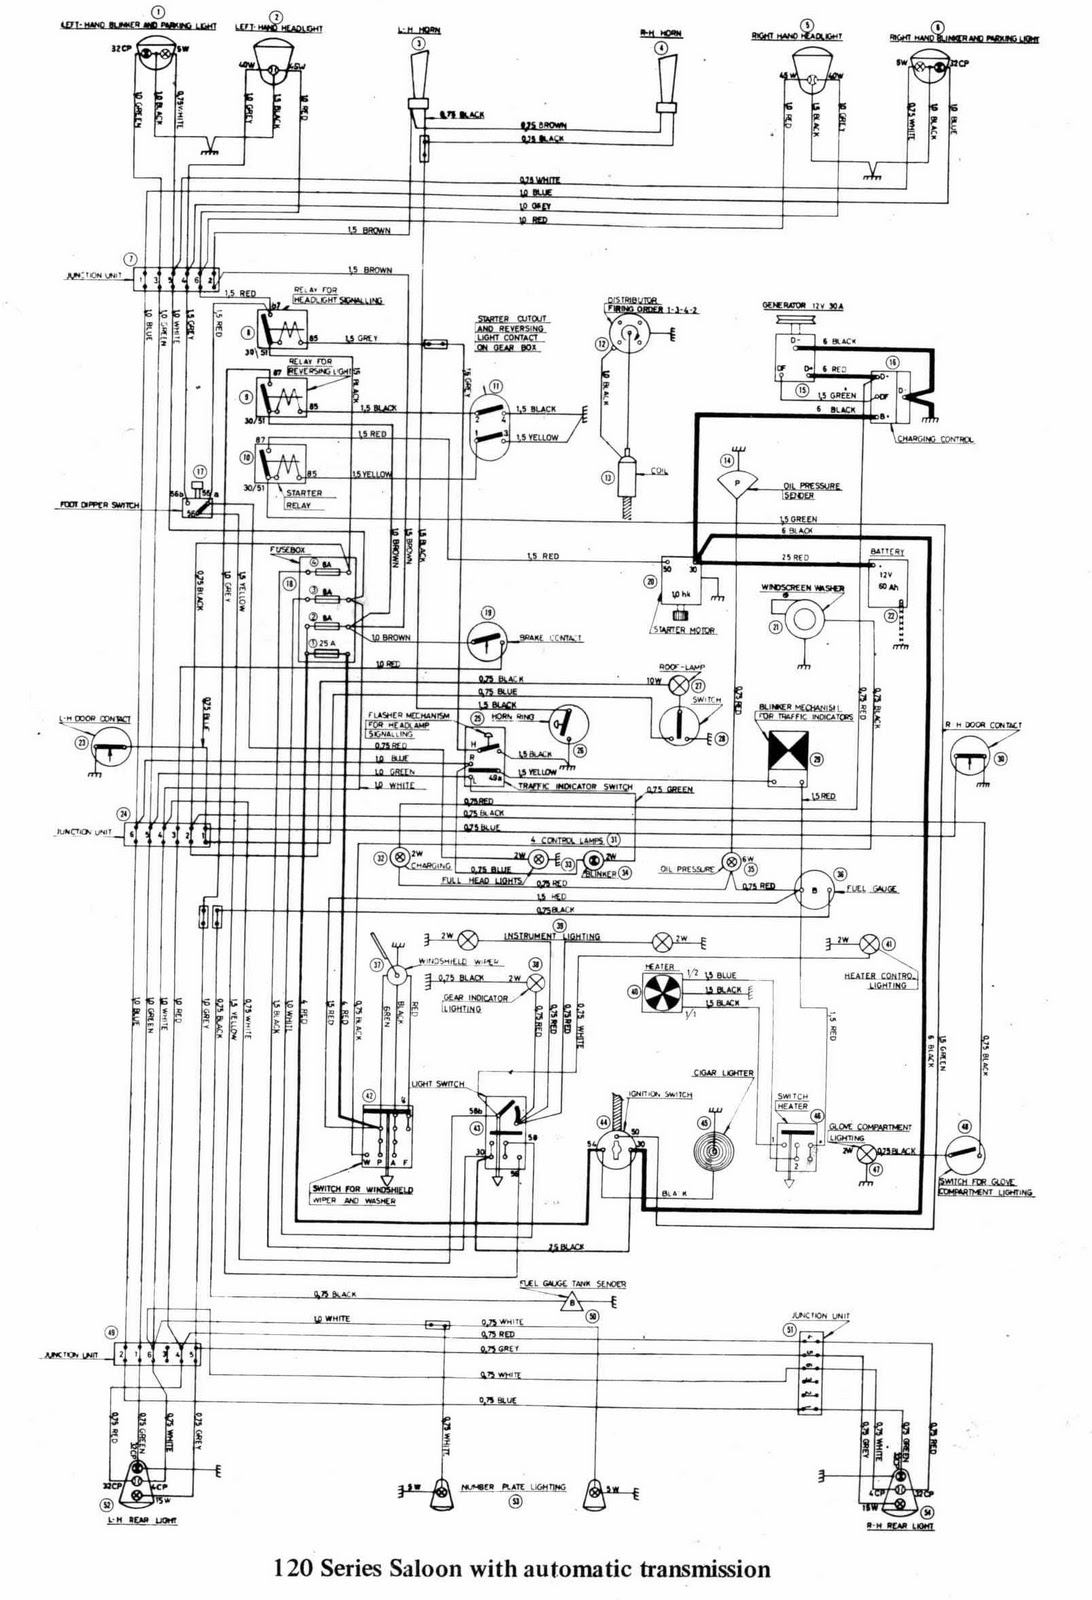 complete wiring diagrams of volvo 122s